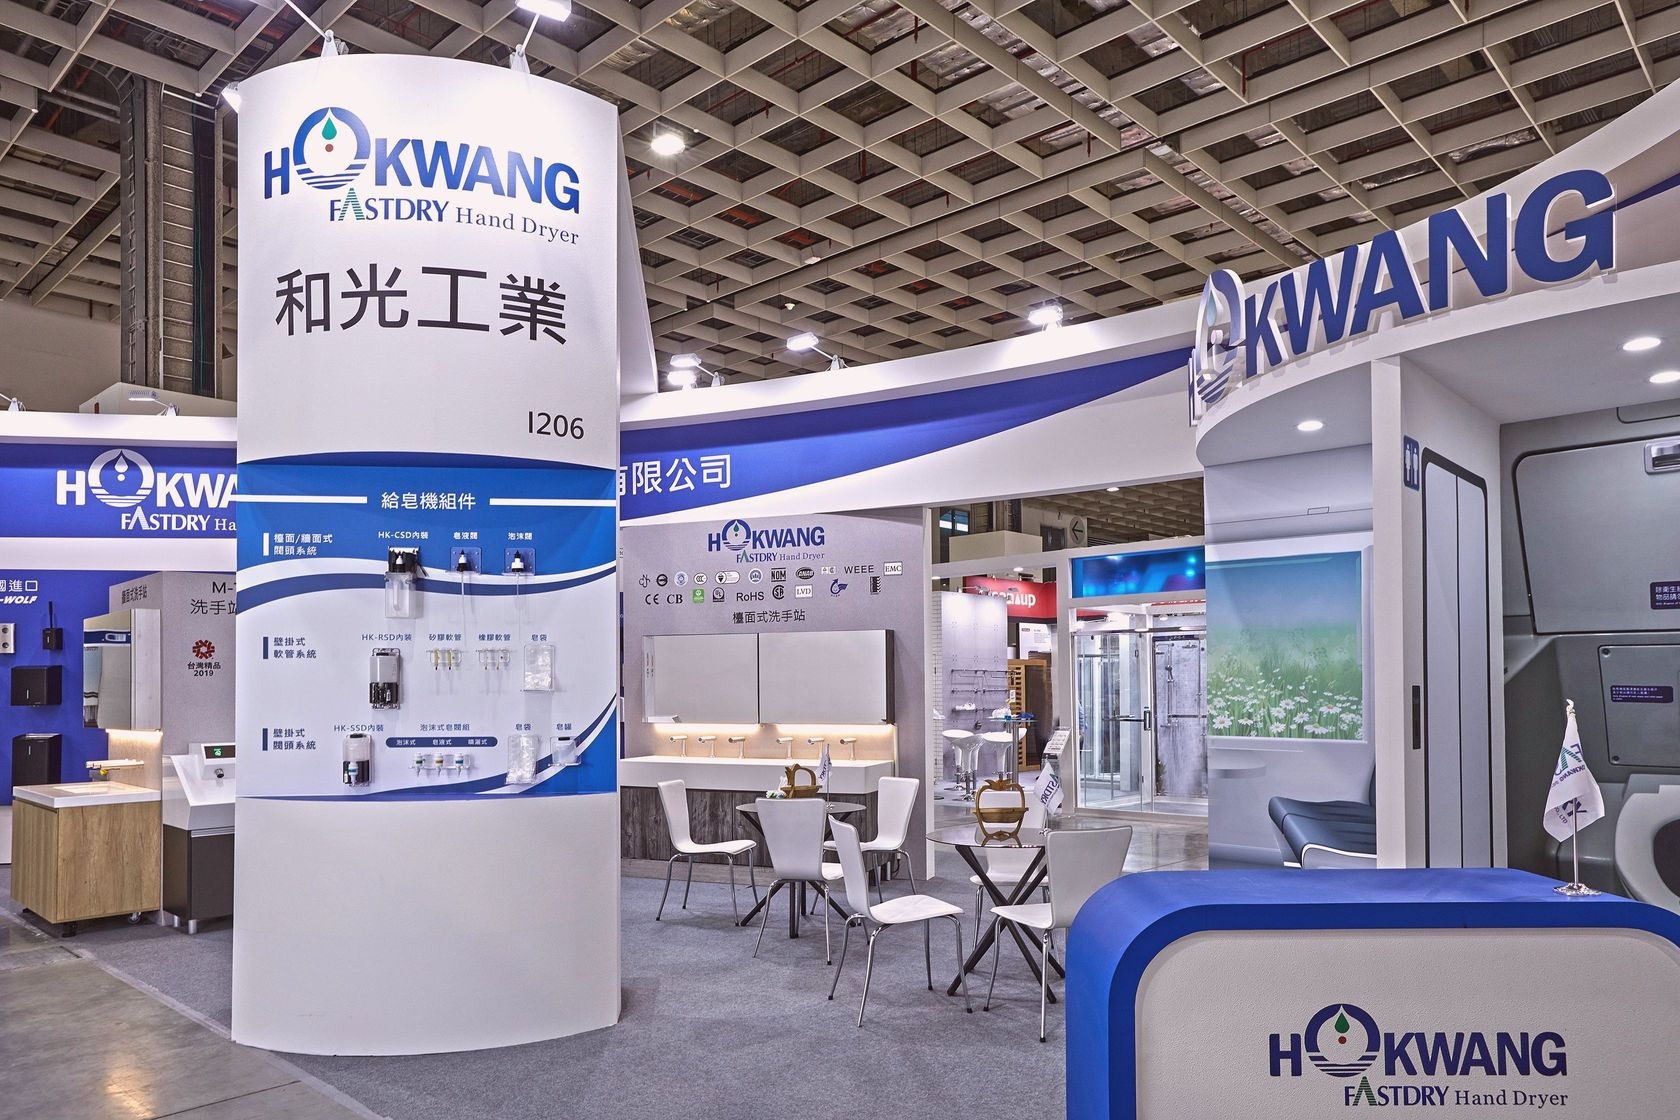 Hokwang booth design in Taipei Building Show 2019